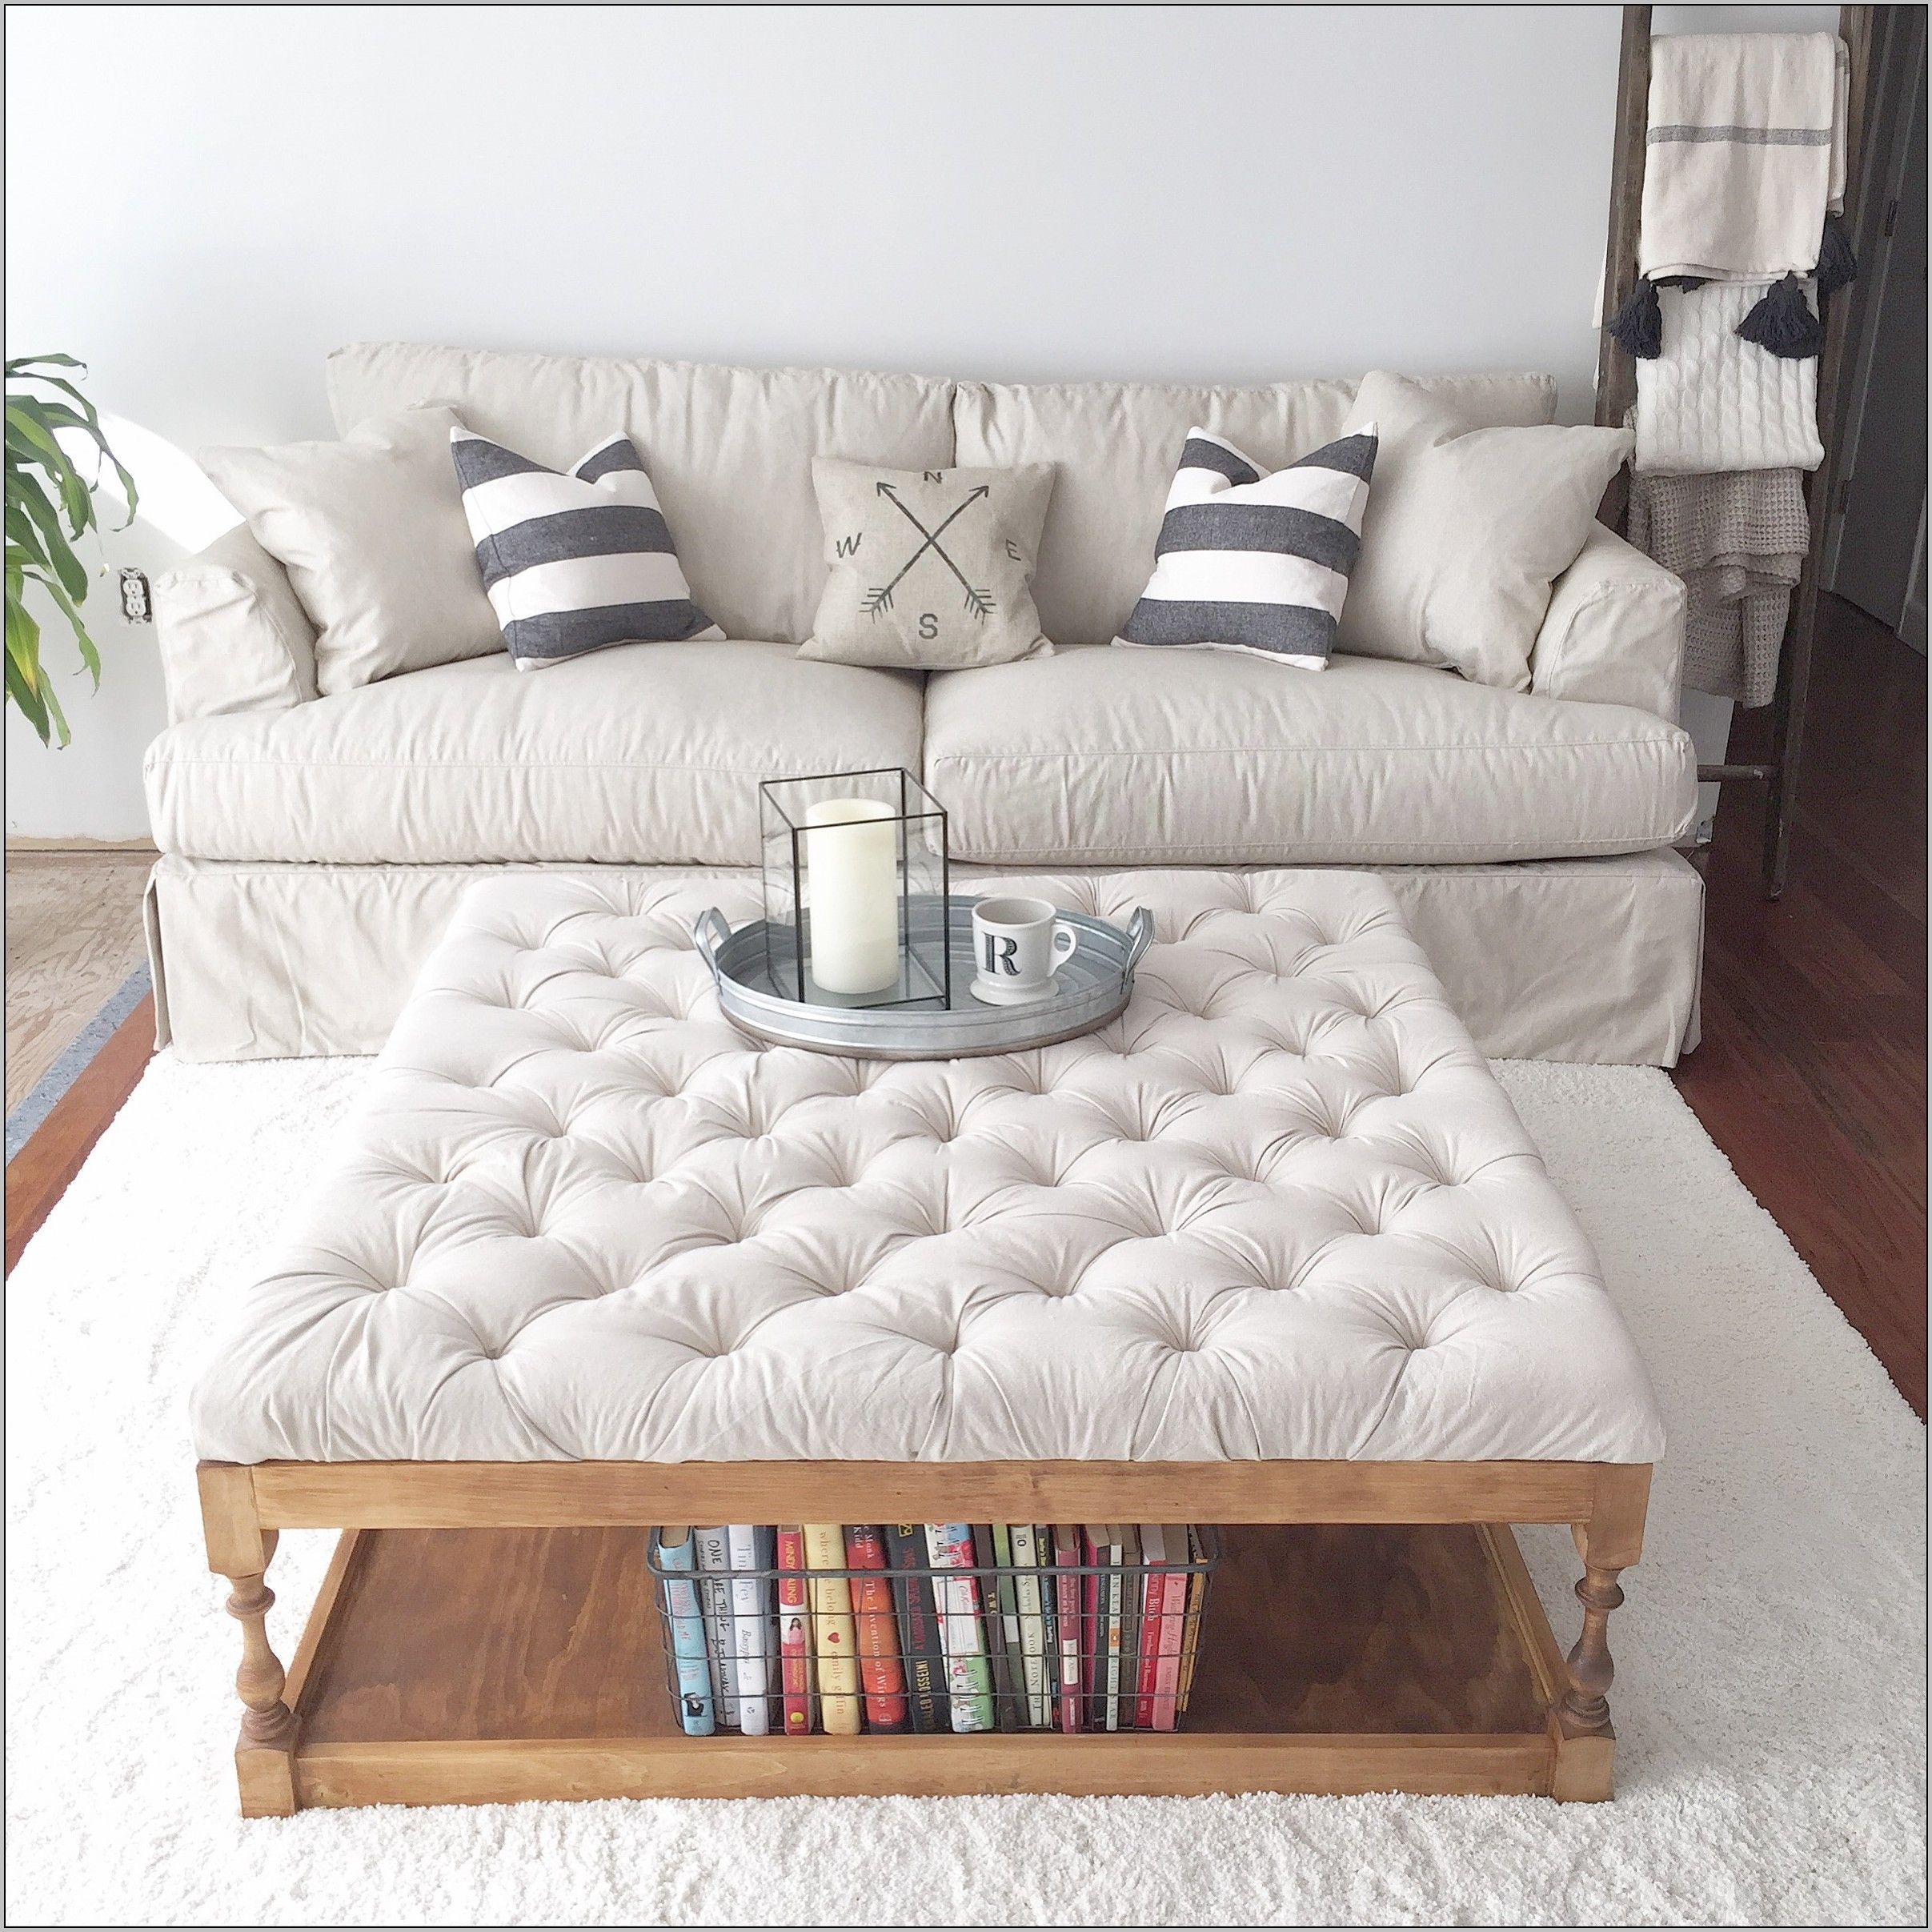 Tufted Ottoman Coffee Table Diy Apartment Leather